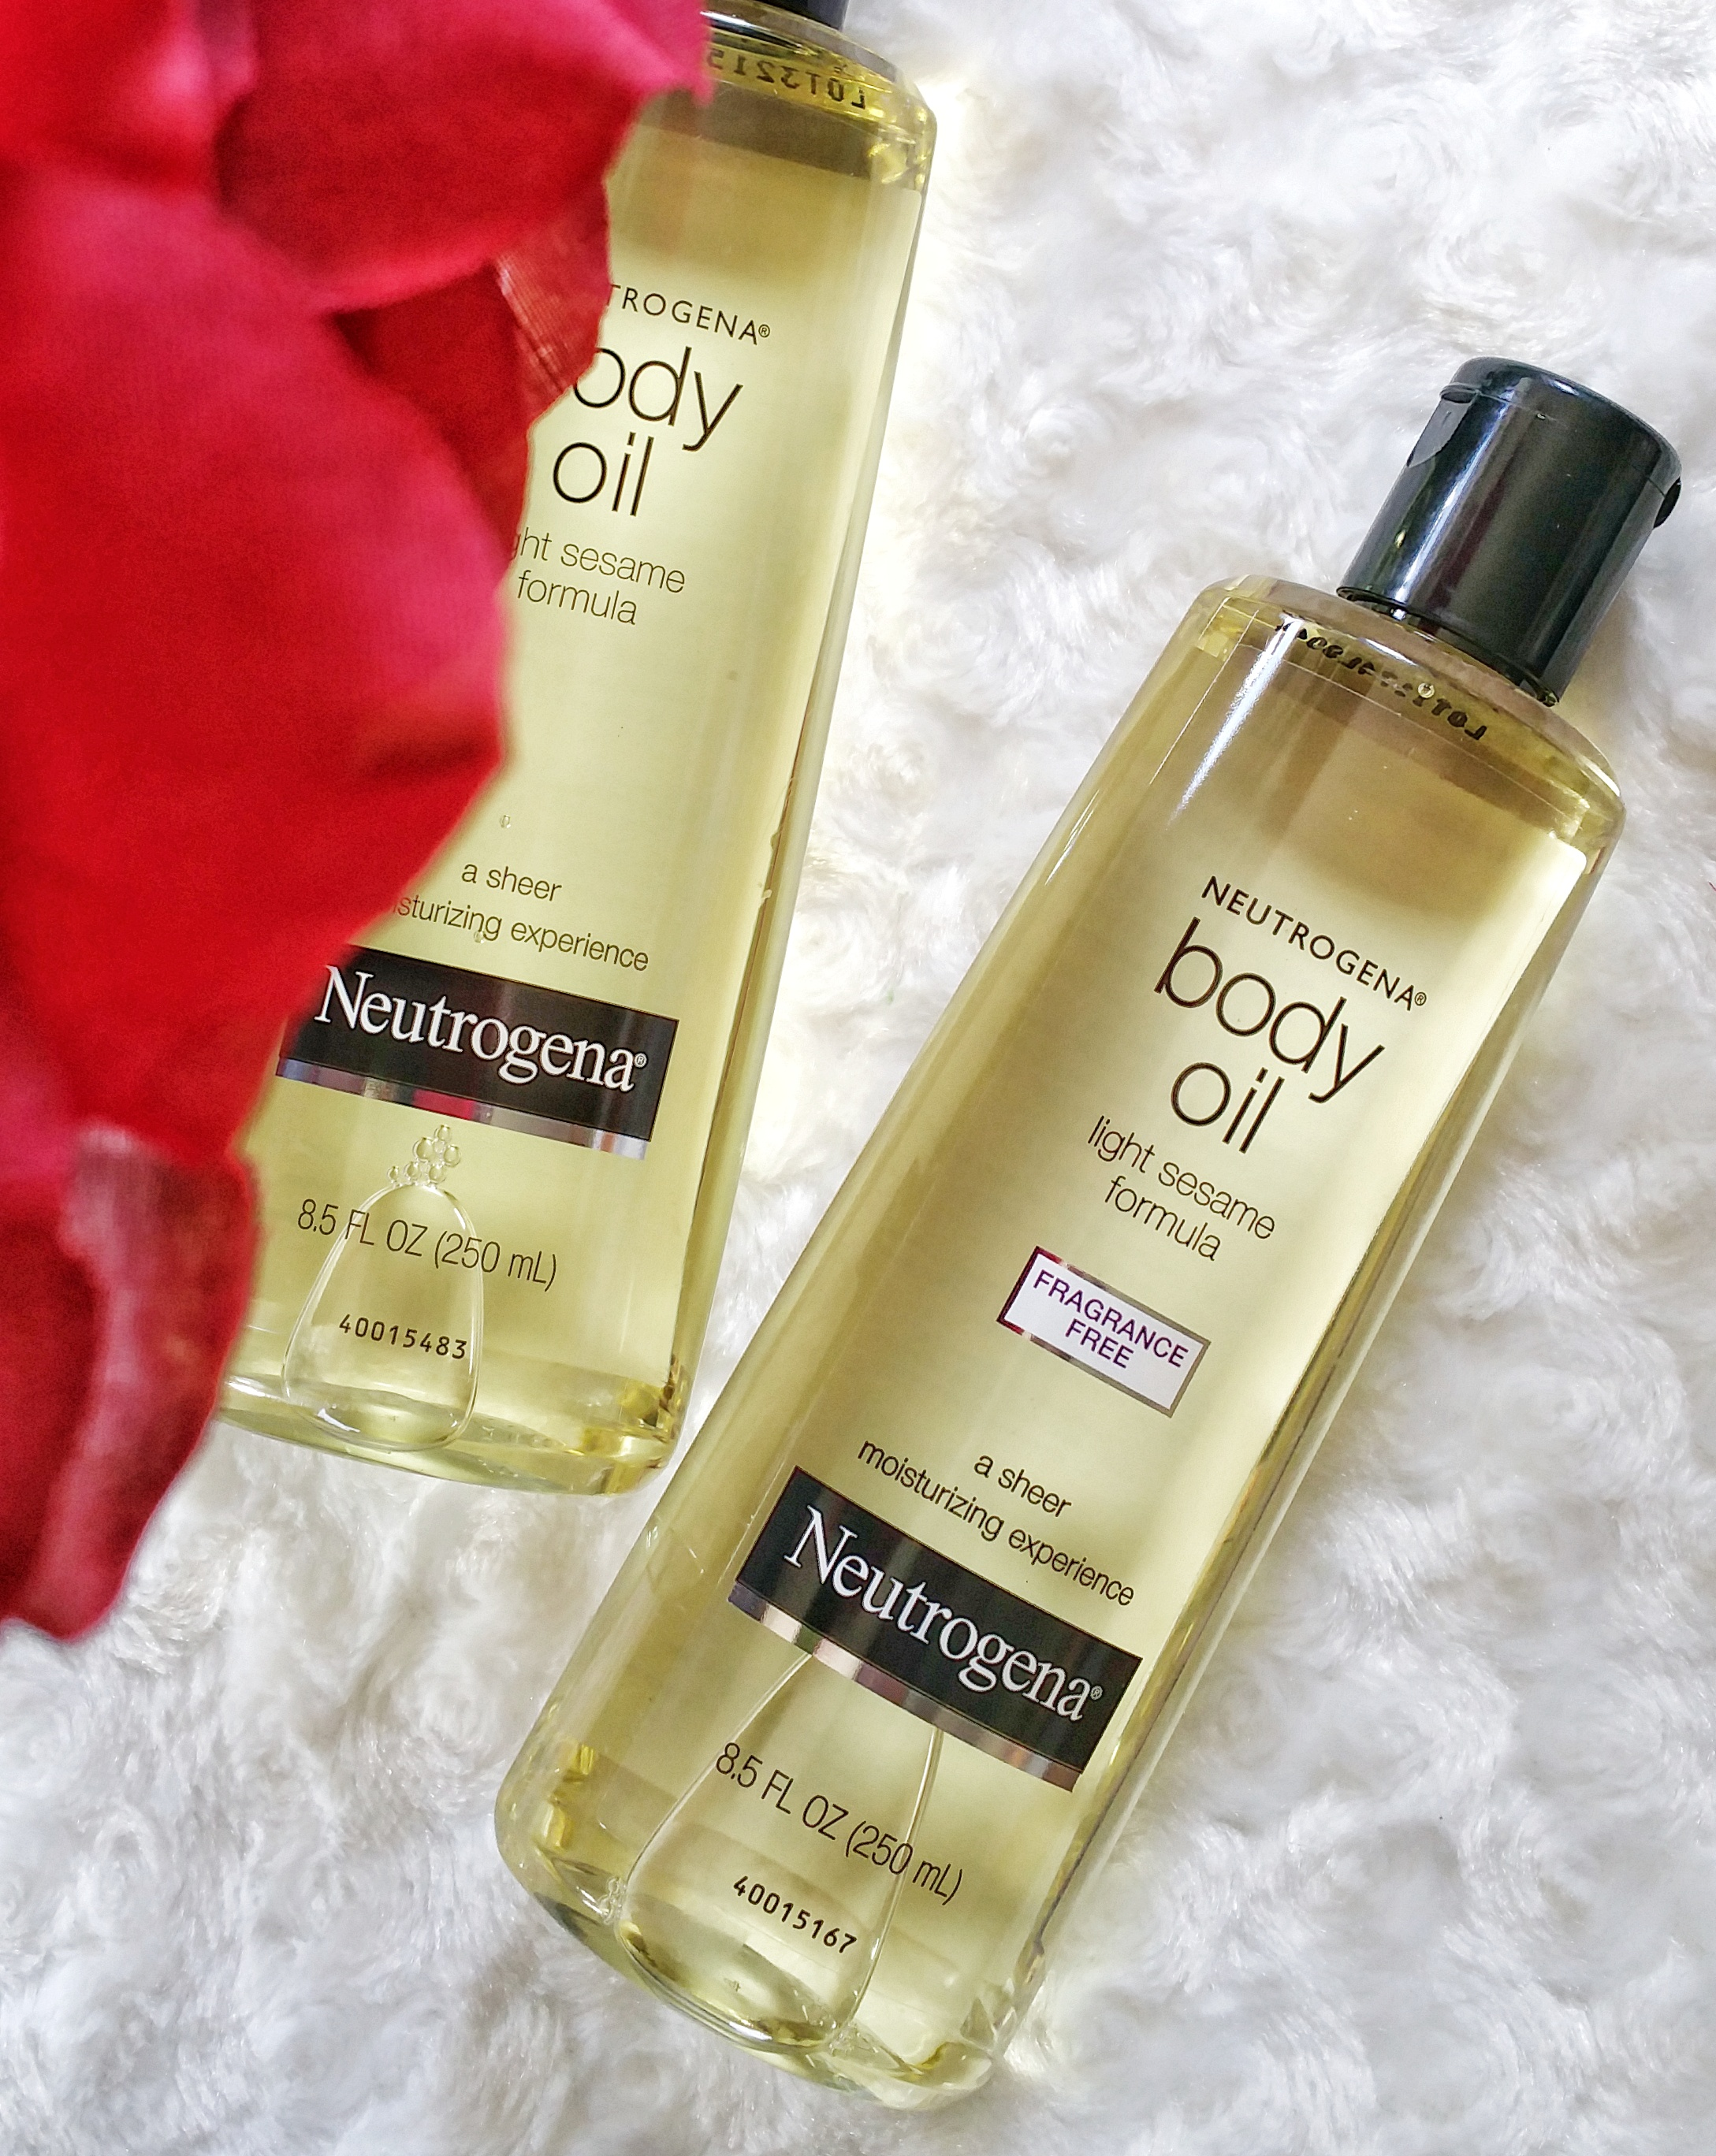 winter routine, body, skin care, skin, neutrogena body oil, neutrogena, body care, winter body care routine, dry skin, moisturizer, skincare, skin care